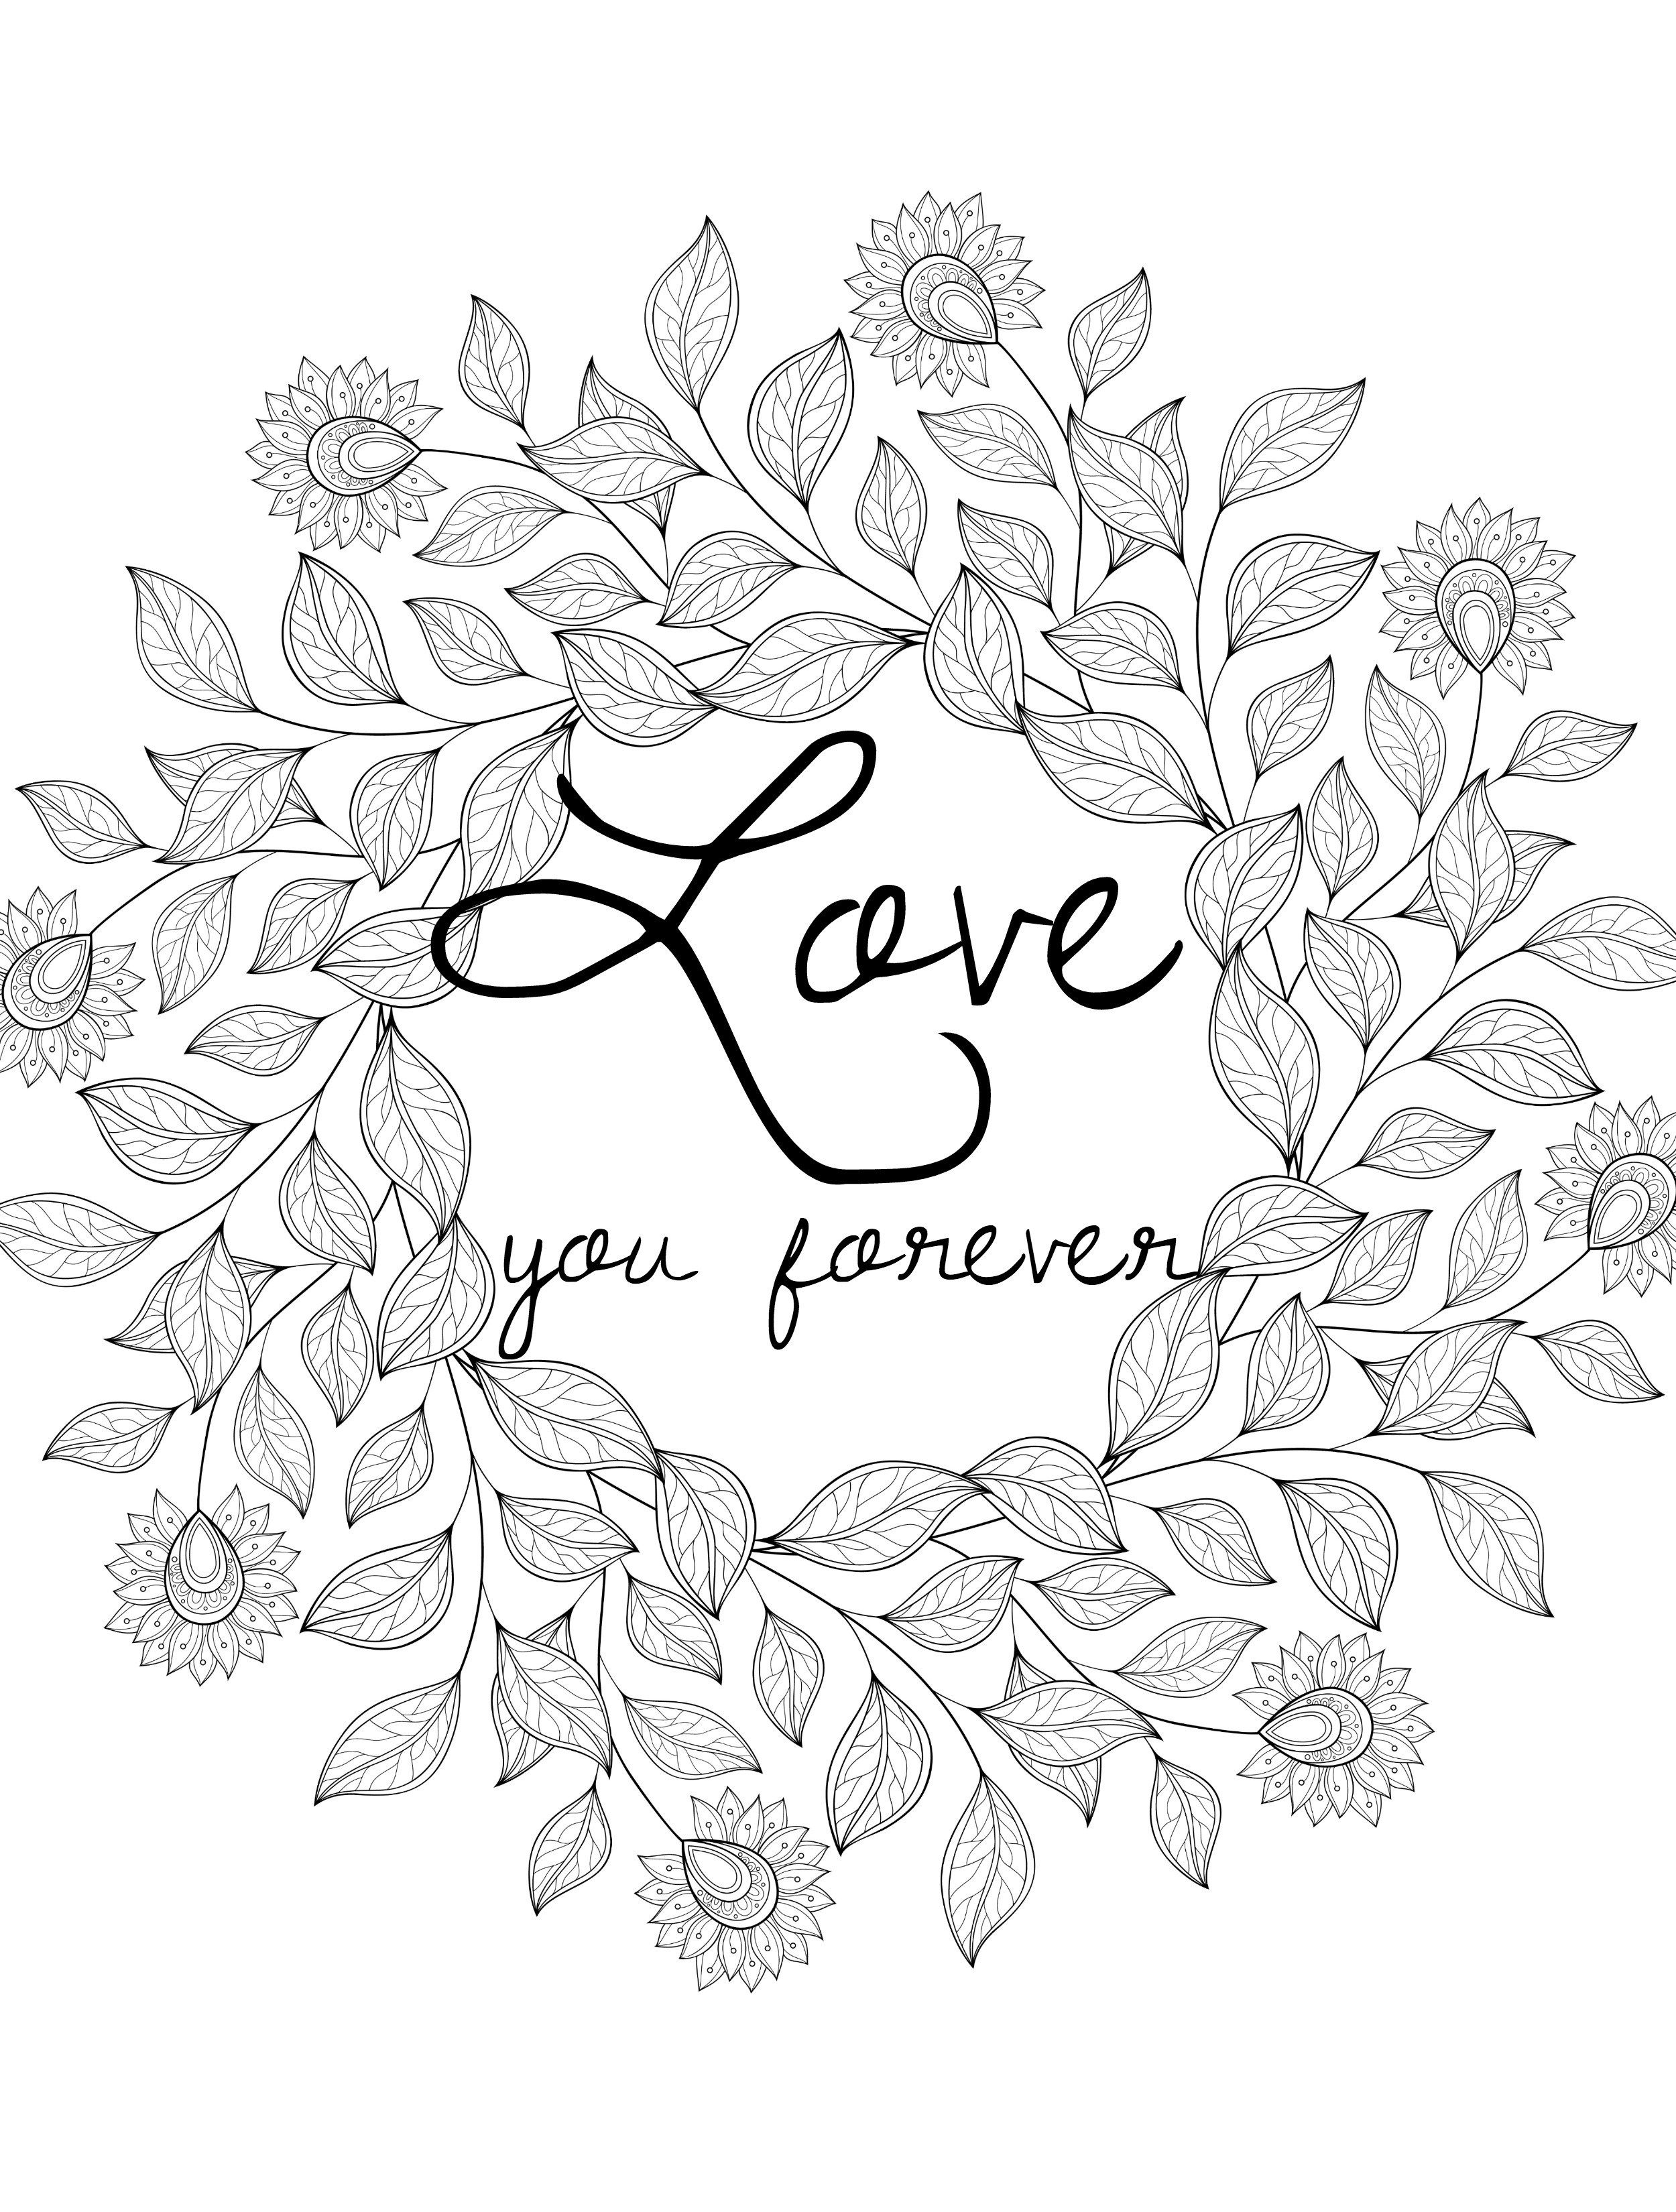 _^) free download-free downloadable coloring pages for adults for ...